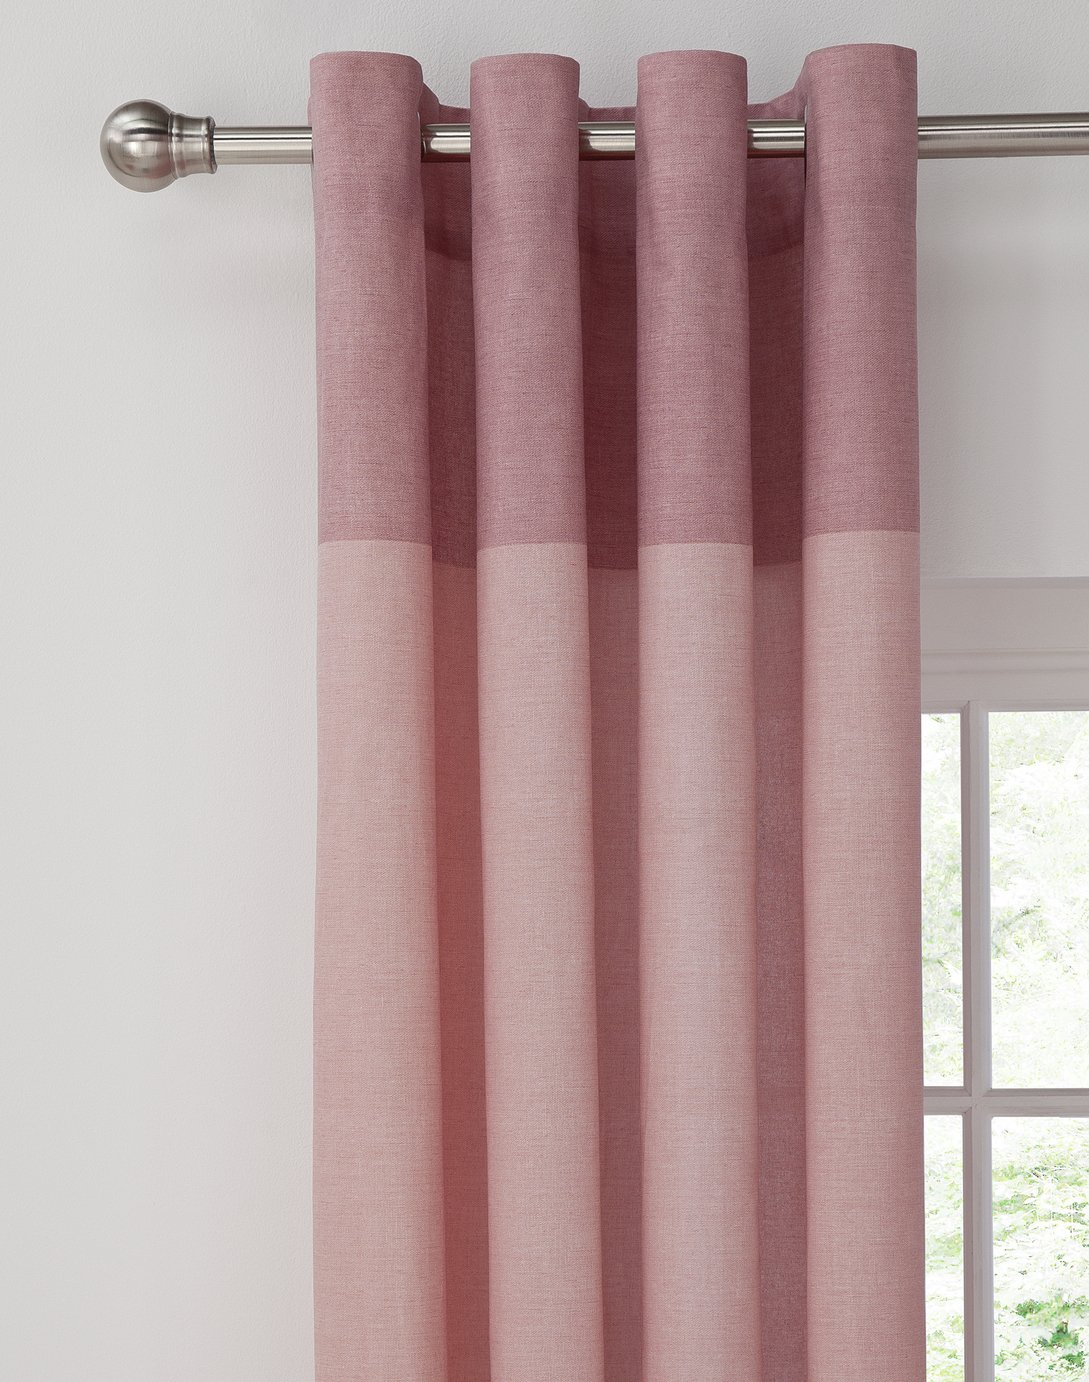 Argos Home Dublin Unlined Eyelet Curtains review